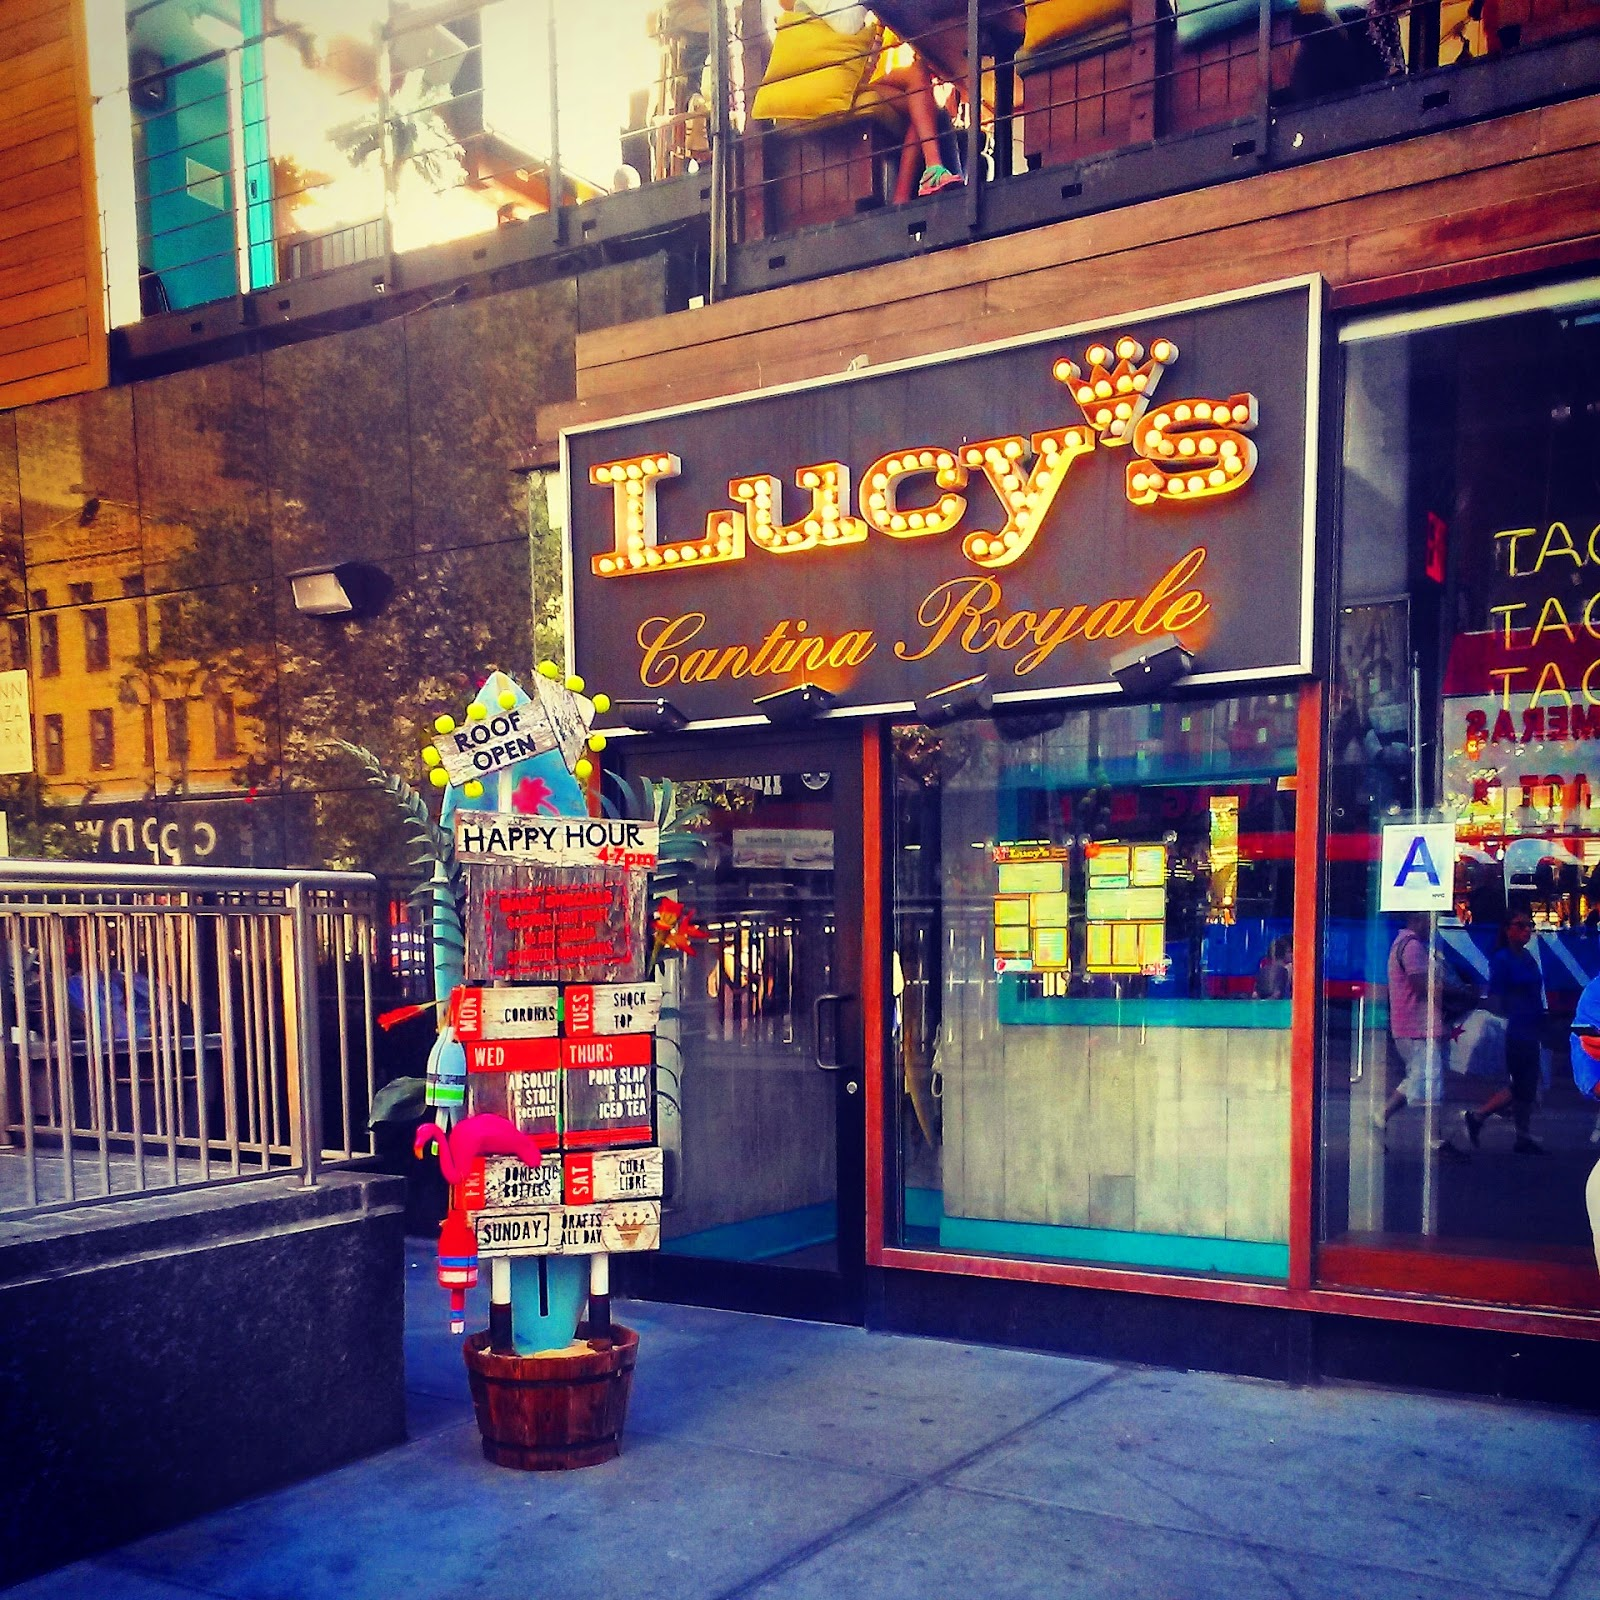 Lucy's Cantina Royale